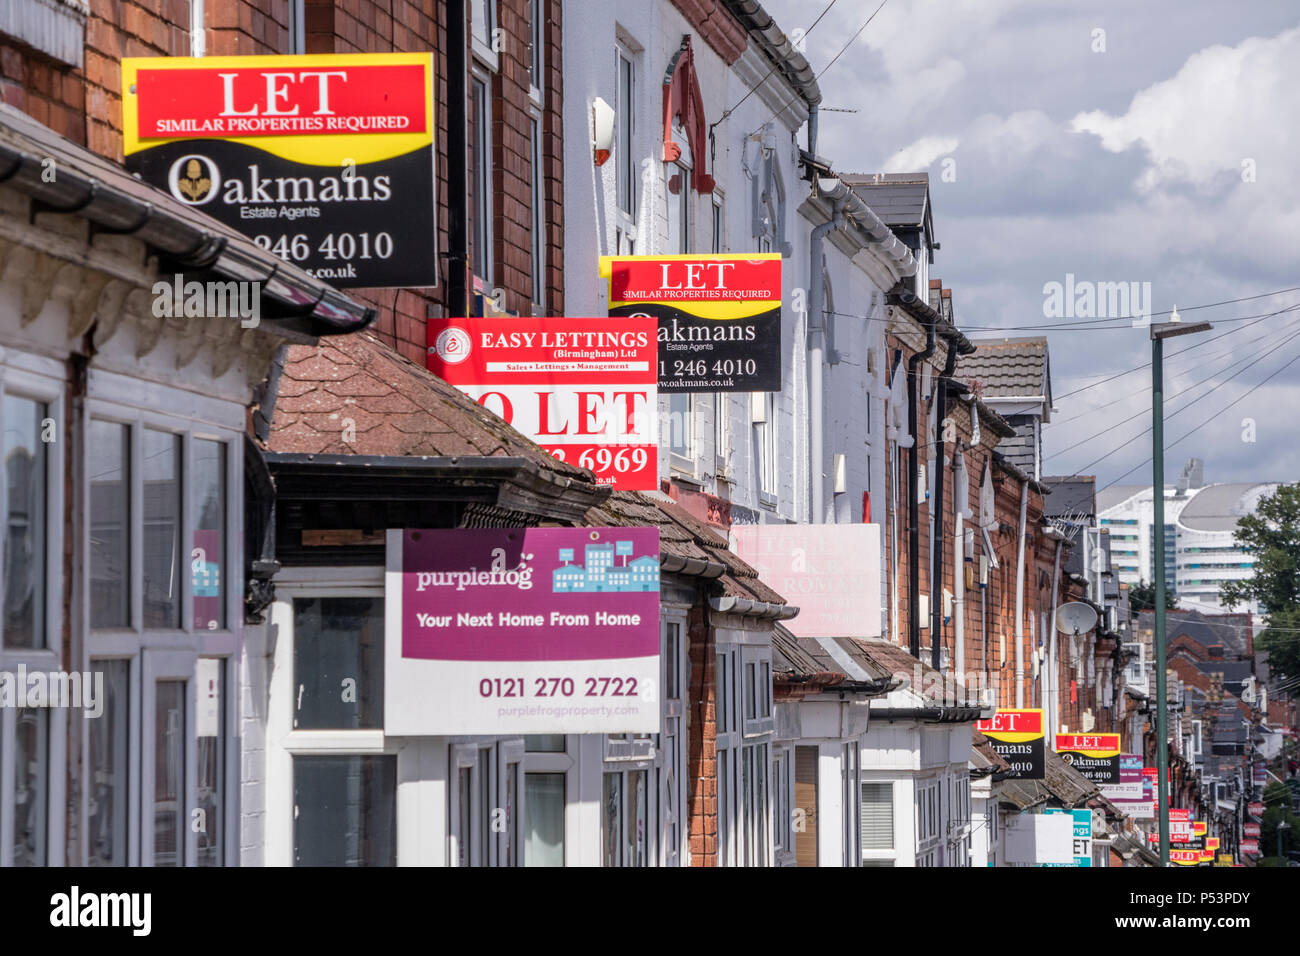 Properties to let in Selly Oak, a popular location for students at Birmingham University, Birmingham, UK - Stock Image